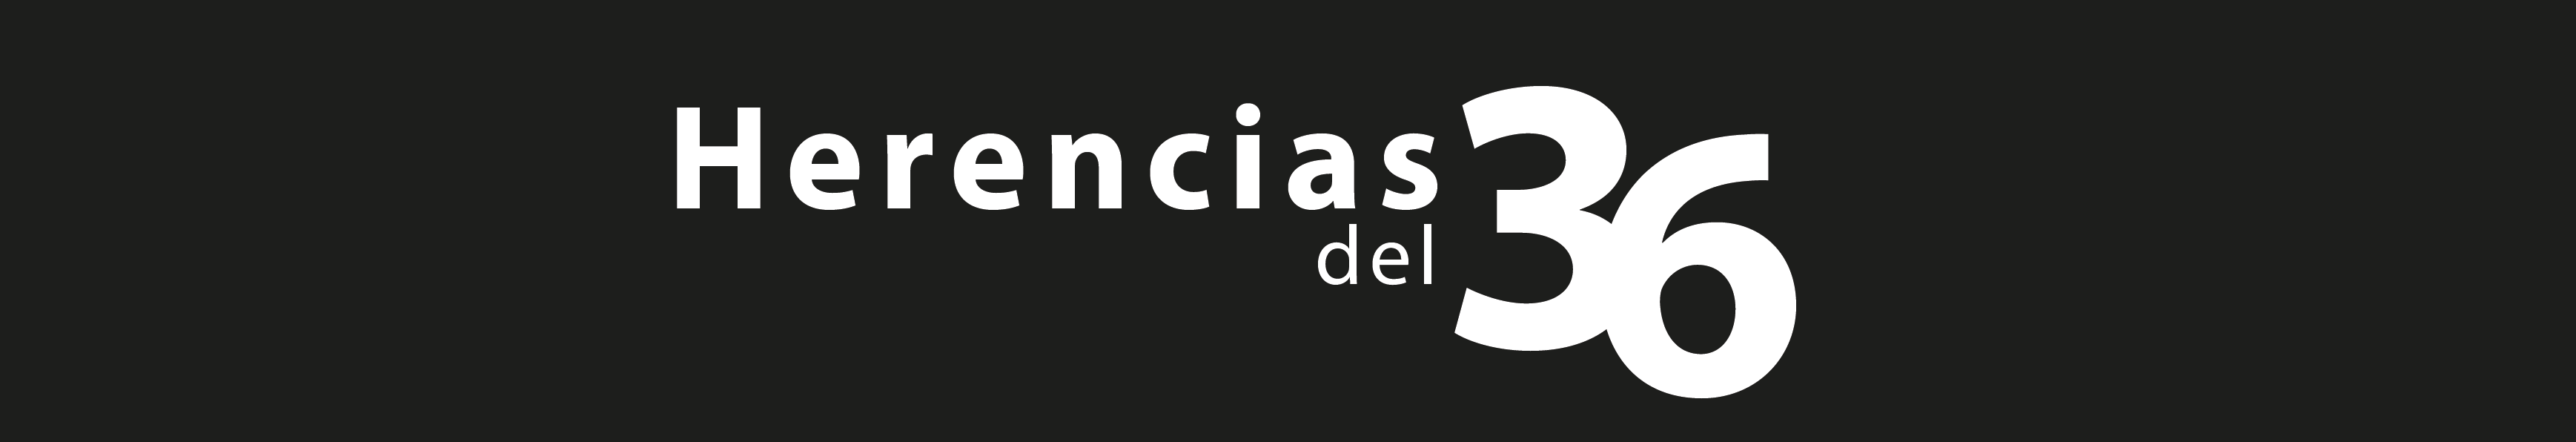 Herencias1936